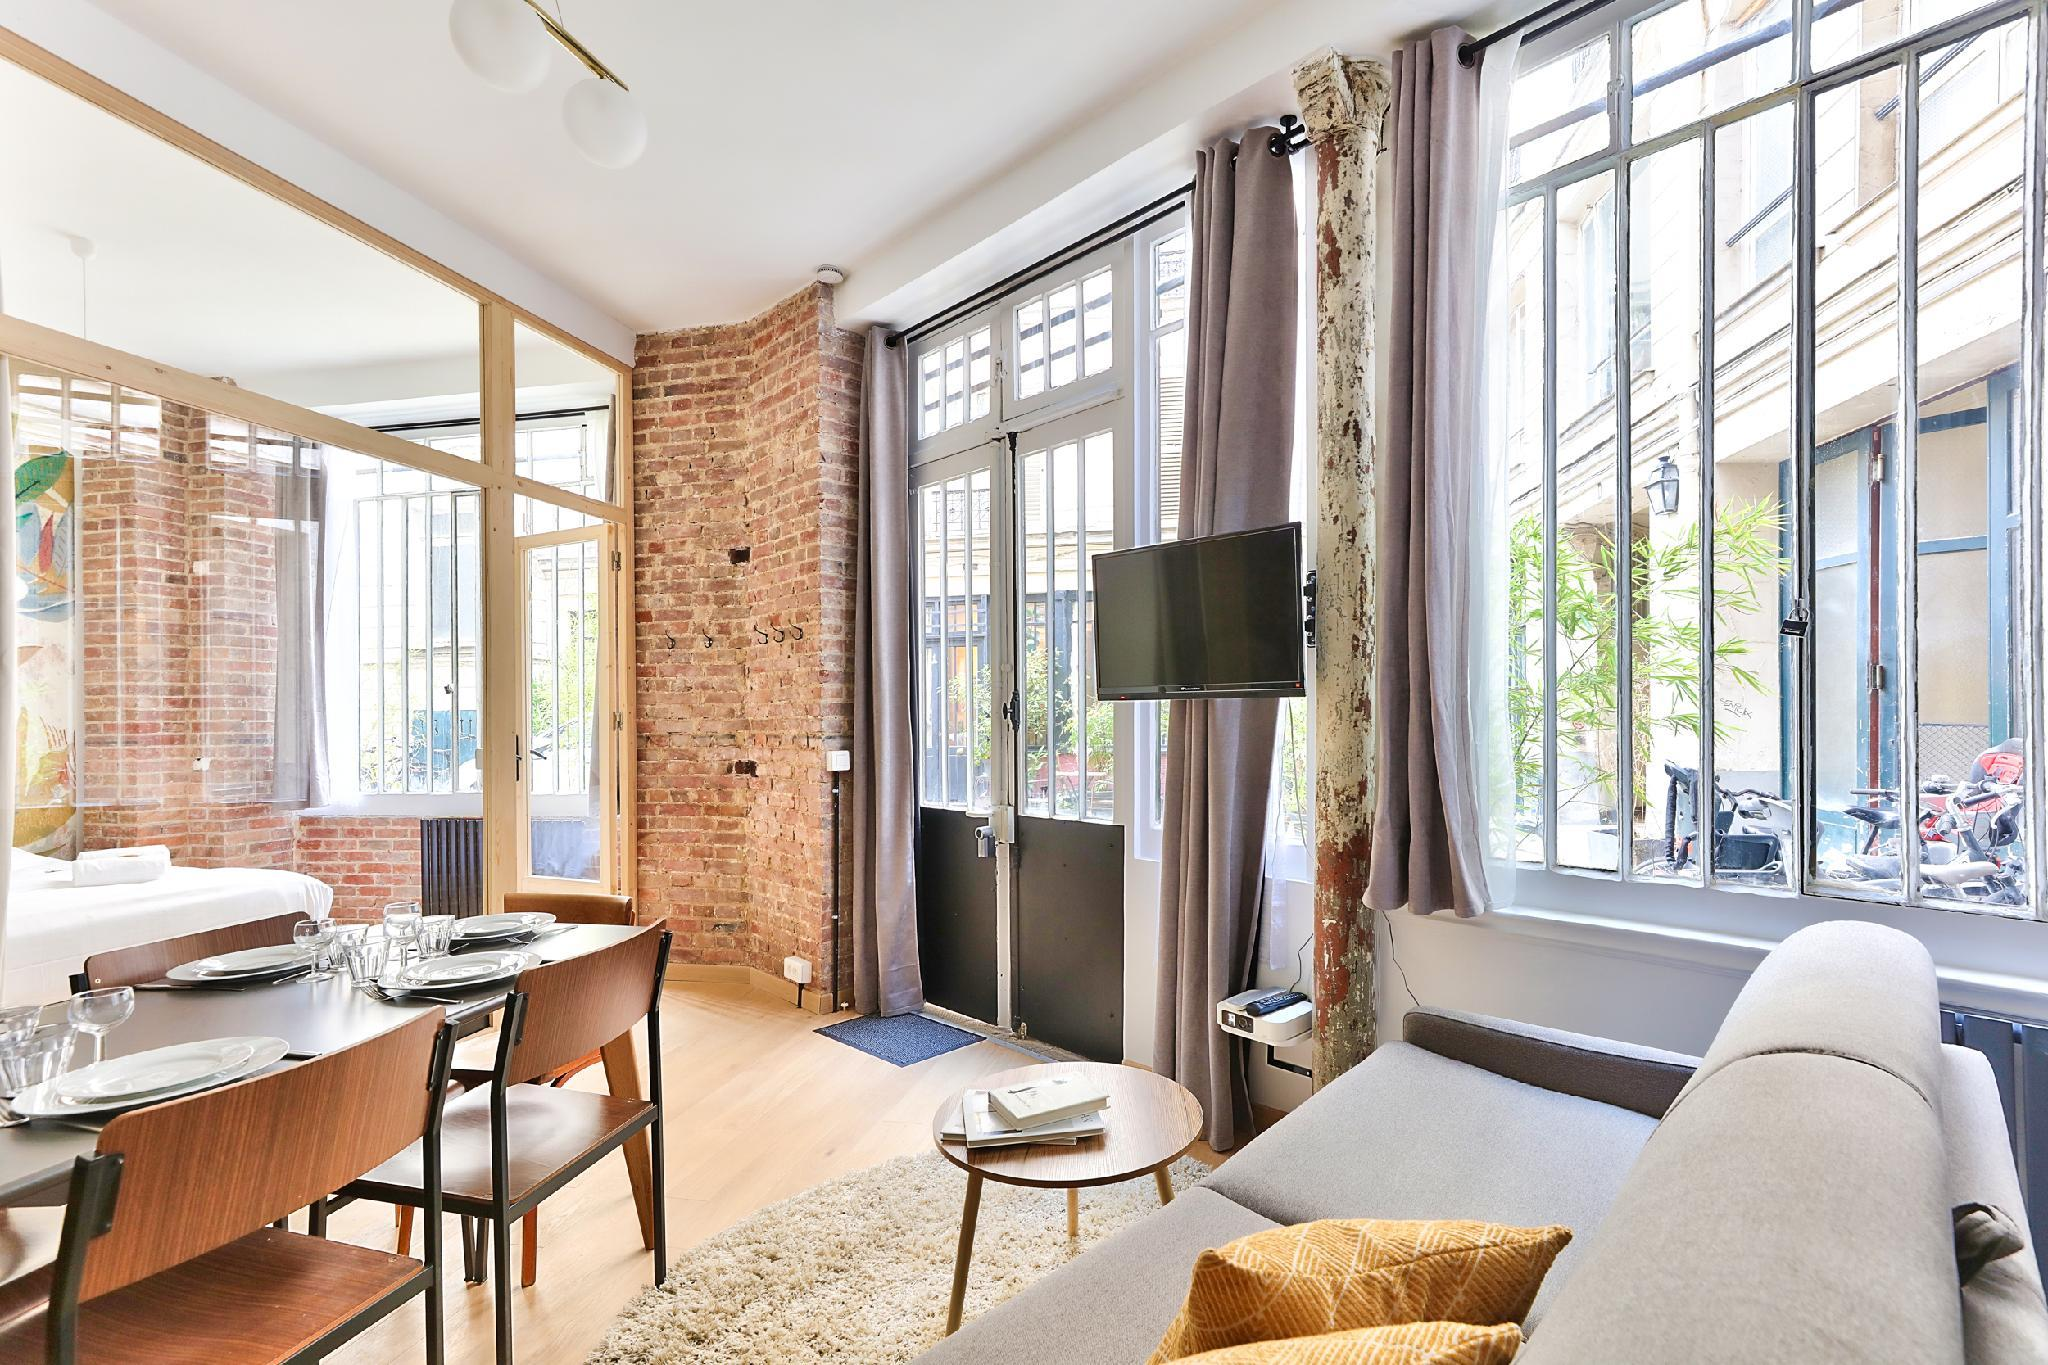 NEW Design Flat In The Heart Of Paris-An Ecoloflat